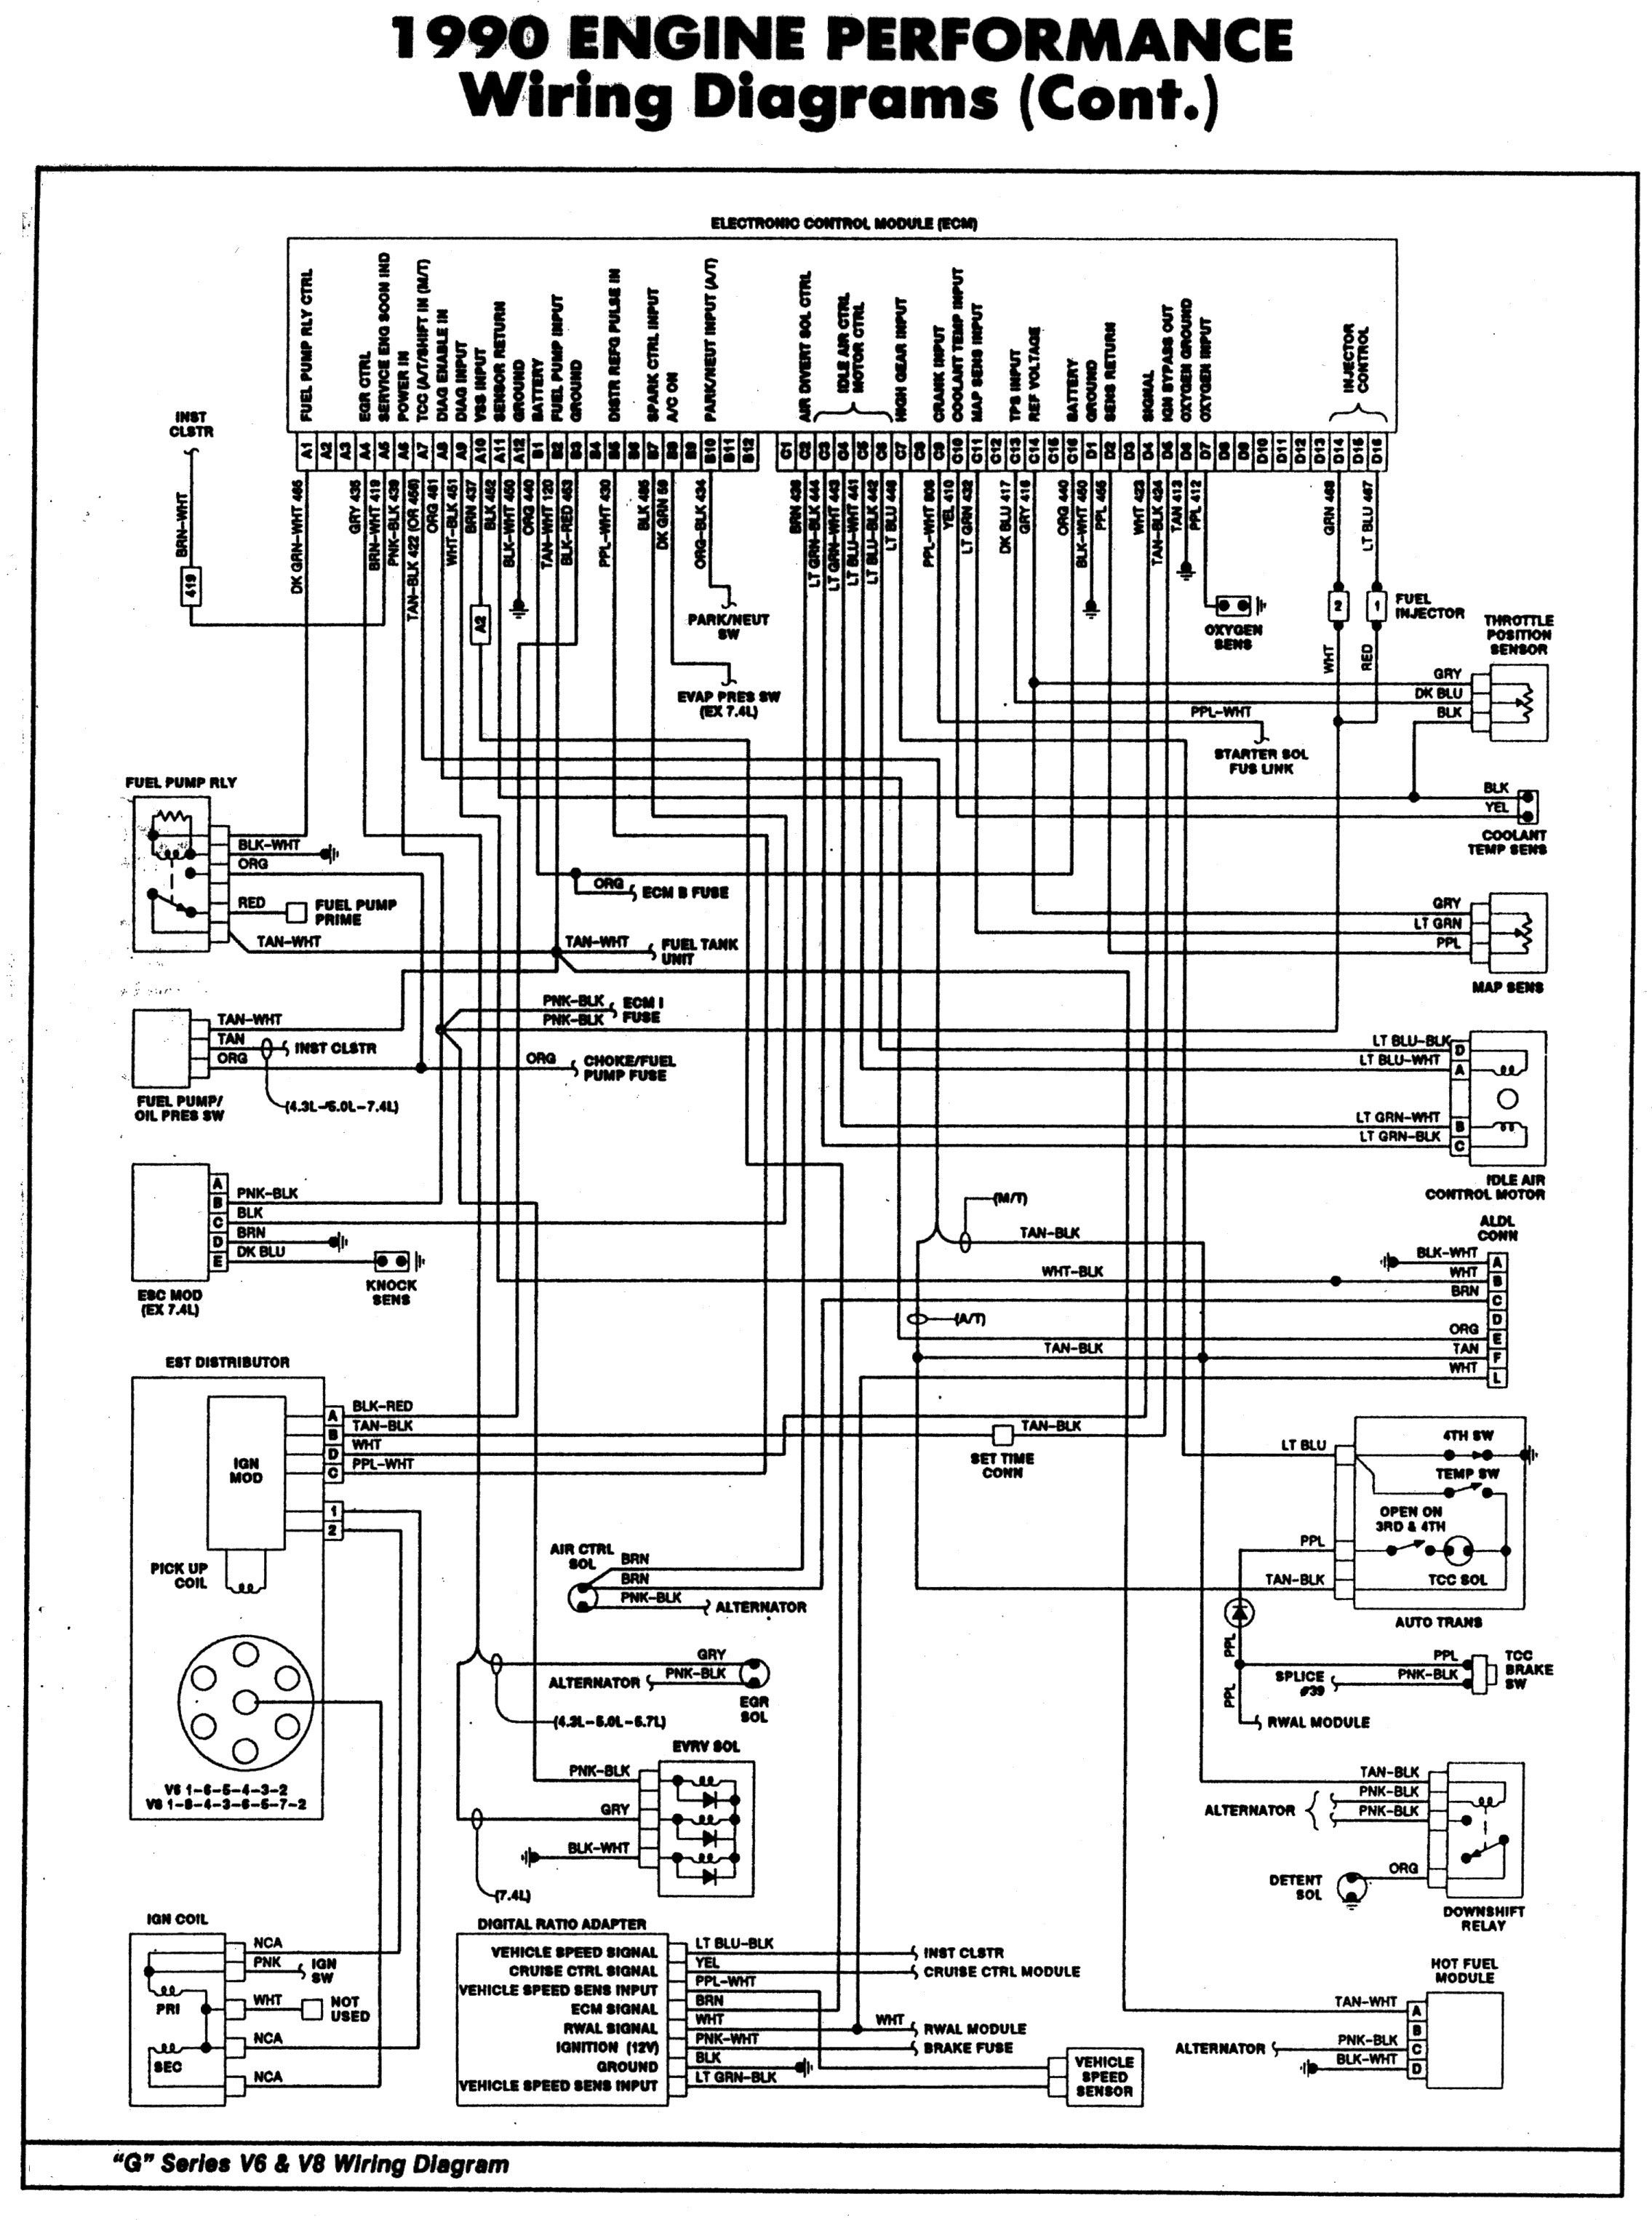 wiring diagram for 2000 chevy truck 4x4 wiring diagram schematicsautomotive wiring diagrams 1994 chevrolet 4x4 wiring diagram database wiring diagram for 2000 chevy truck 4x4